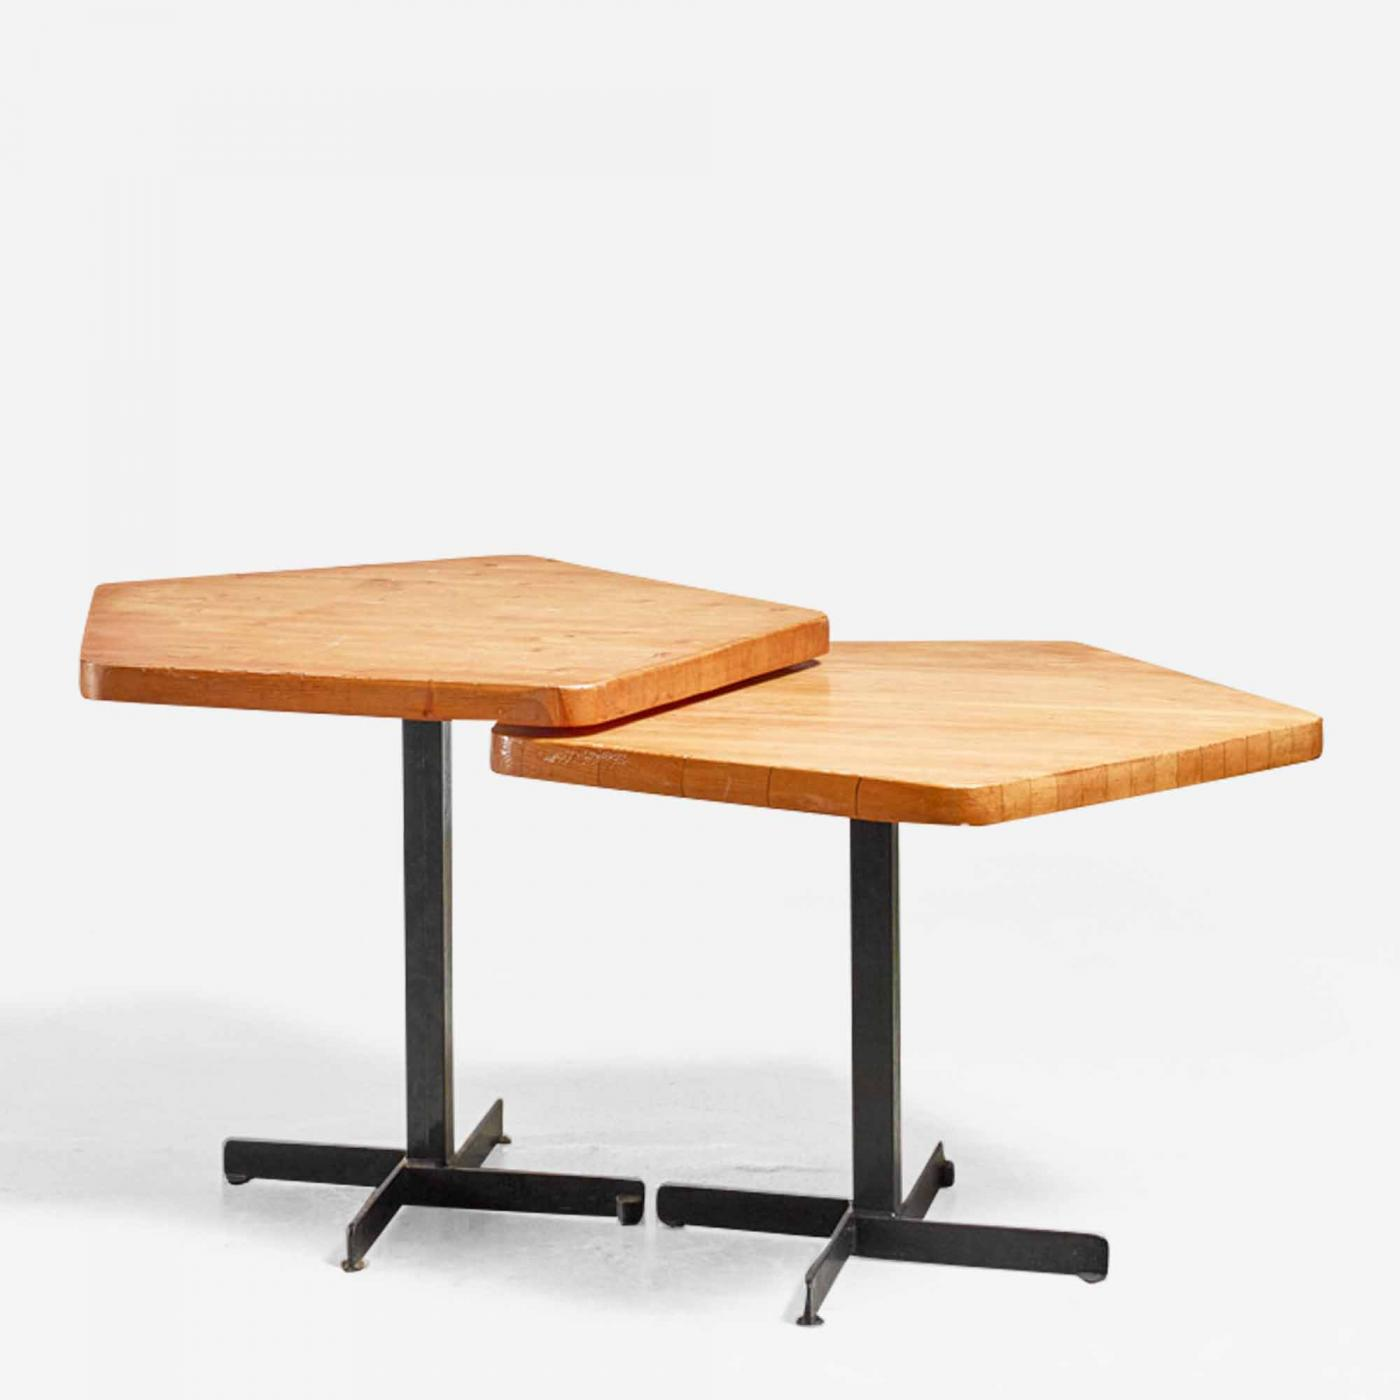 Peachy Charlotte Perriand Charlotte Perriand Pentagonal Table Ocoug Best Dining Table And Chair Ideas Images Ocougorg